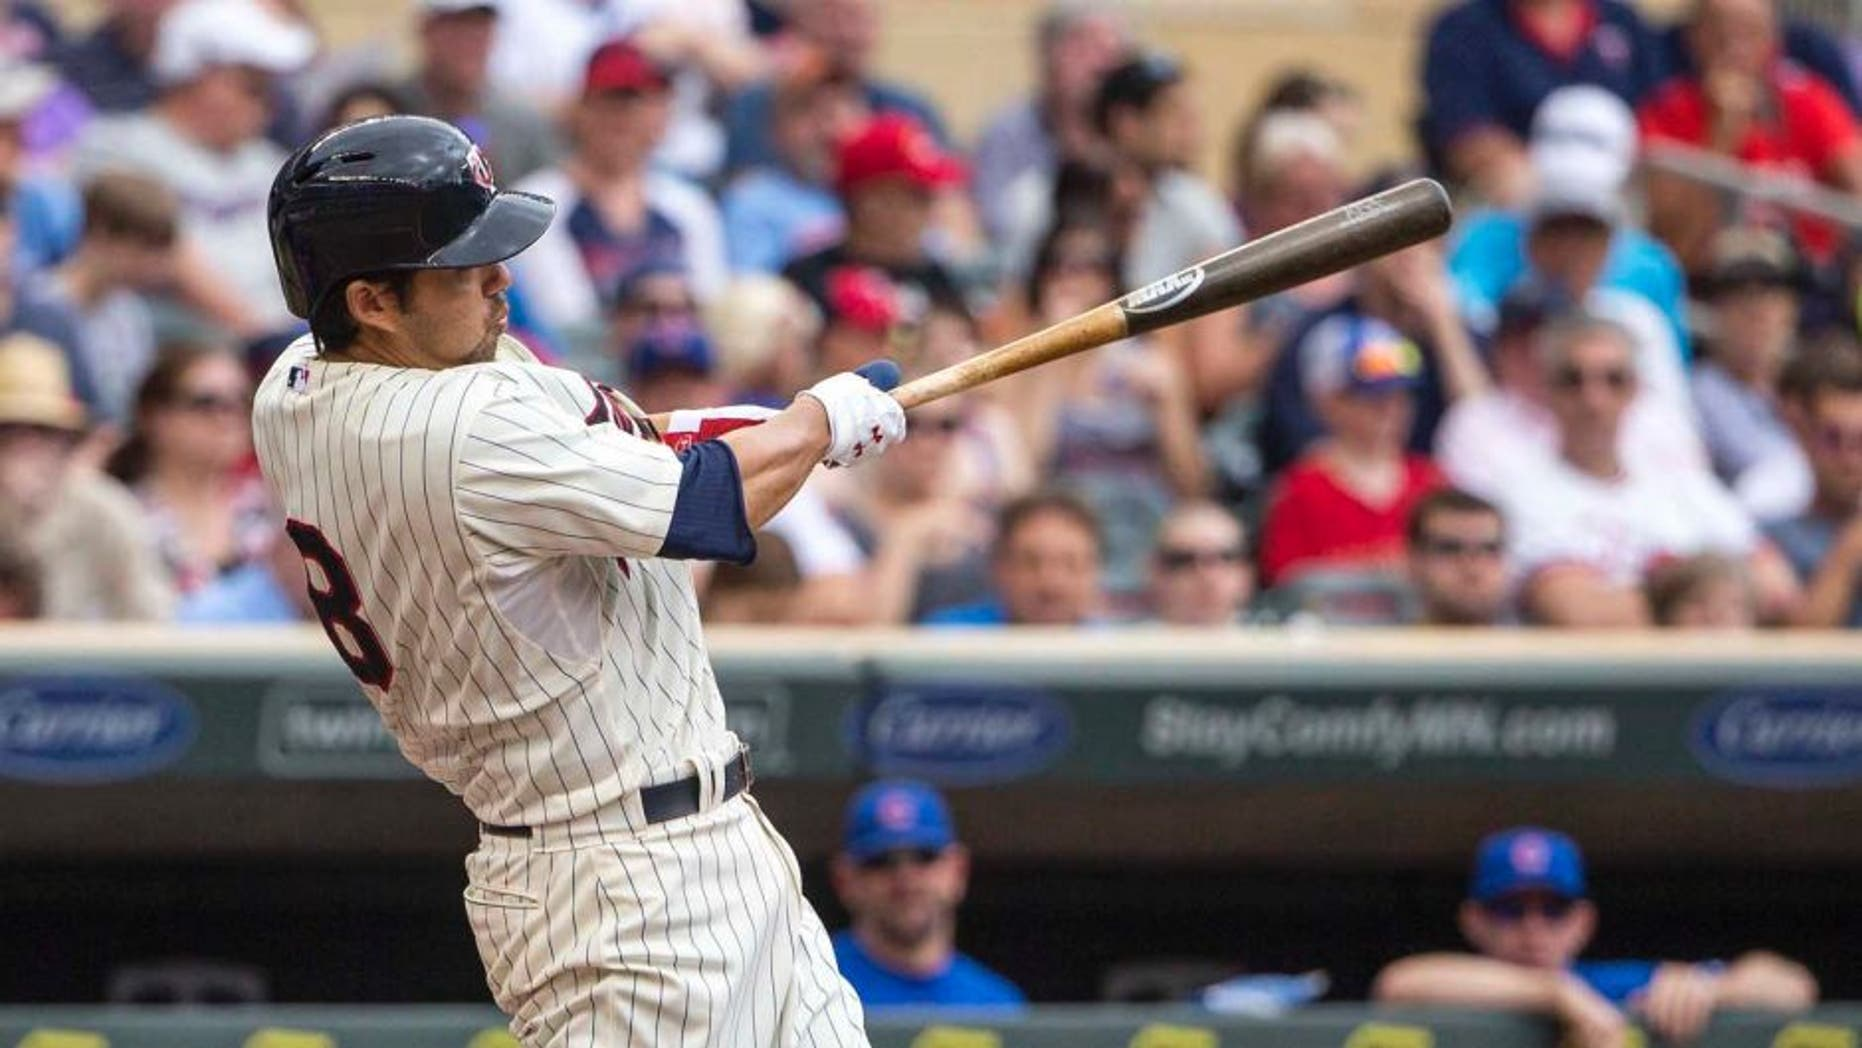 Jun 20, 2015; Minneapolis, MN, USA; Minnesota Twins catcher Kurt Suzuki hits a home run in the second inning against the Chicago Cubs at Target Field.